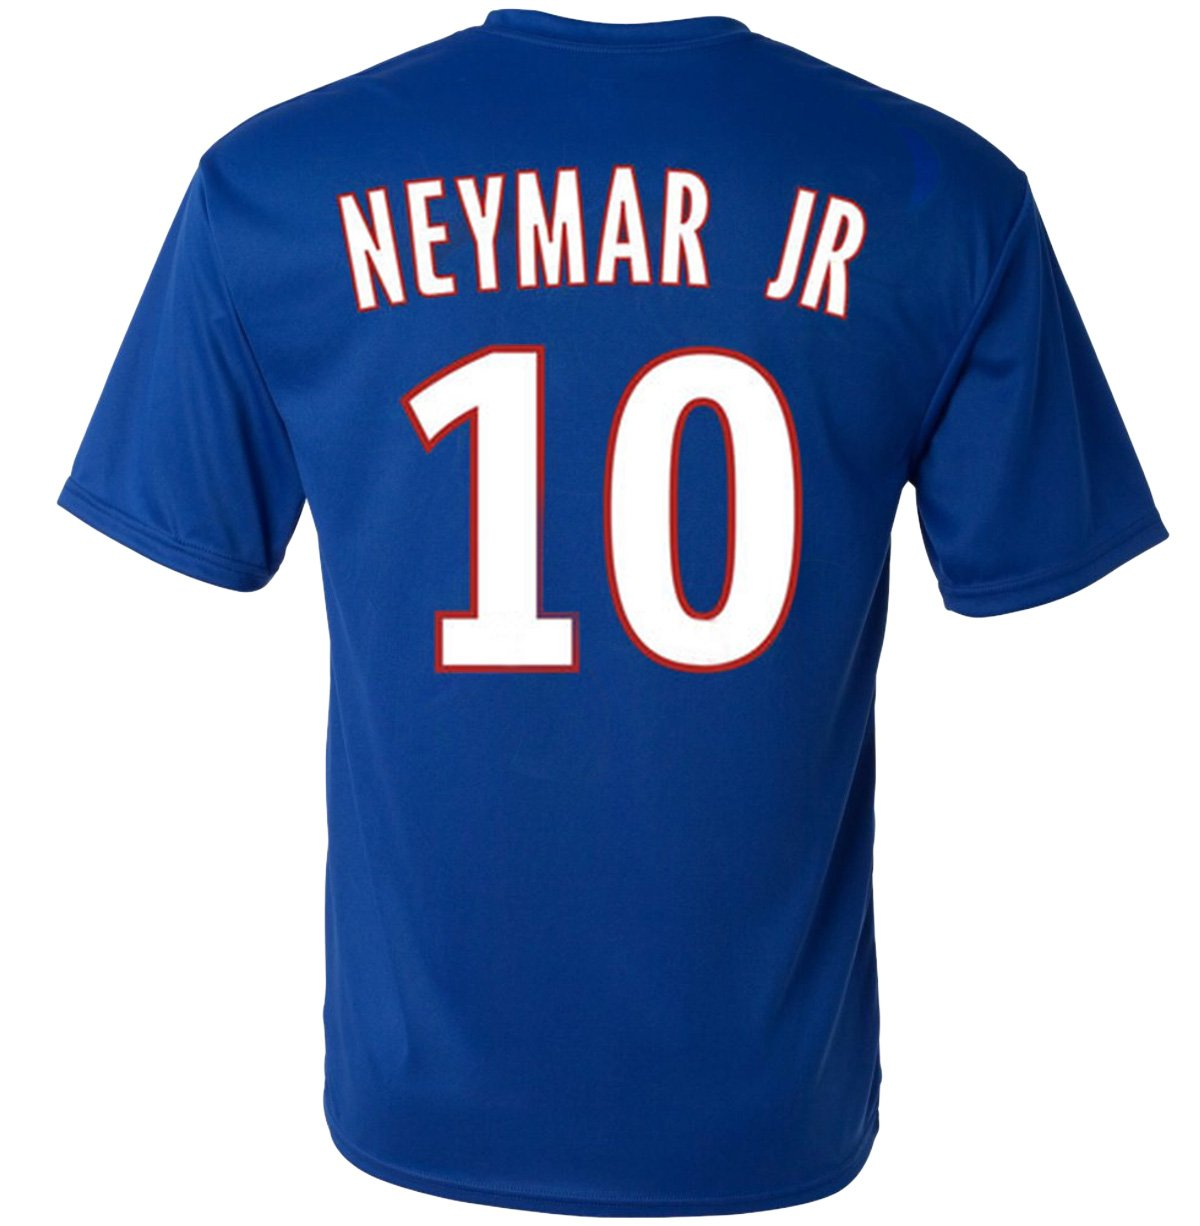 14bd8be2d29 Amazon.com  Neymar Jersey Style T-shirt Kids Neymar Jr Jersey PSG T-shirt  Gift Set Youth Sizes ✓ Premium Quality ✓ Lightweight Breathable Material ...